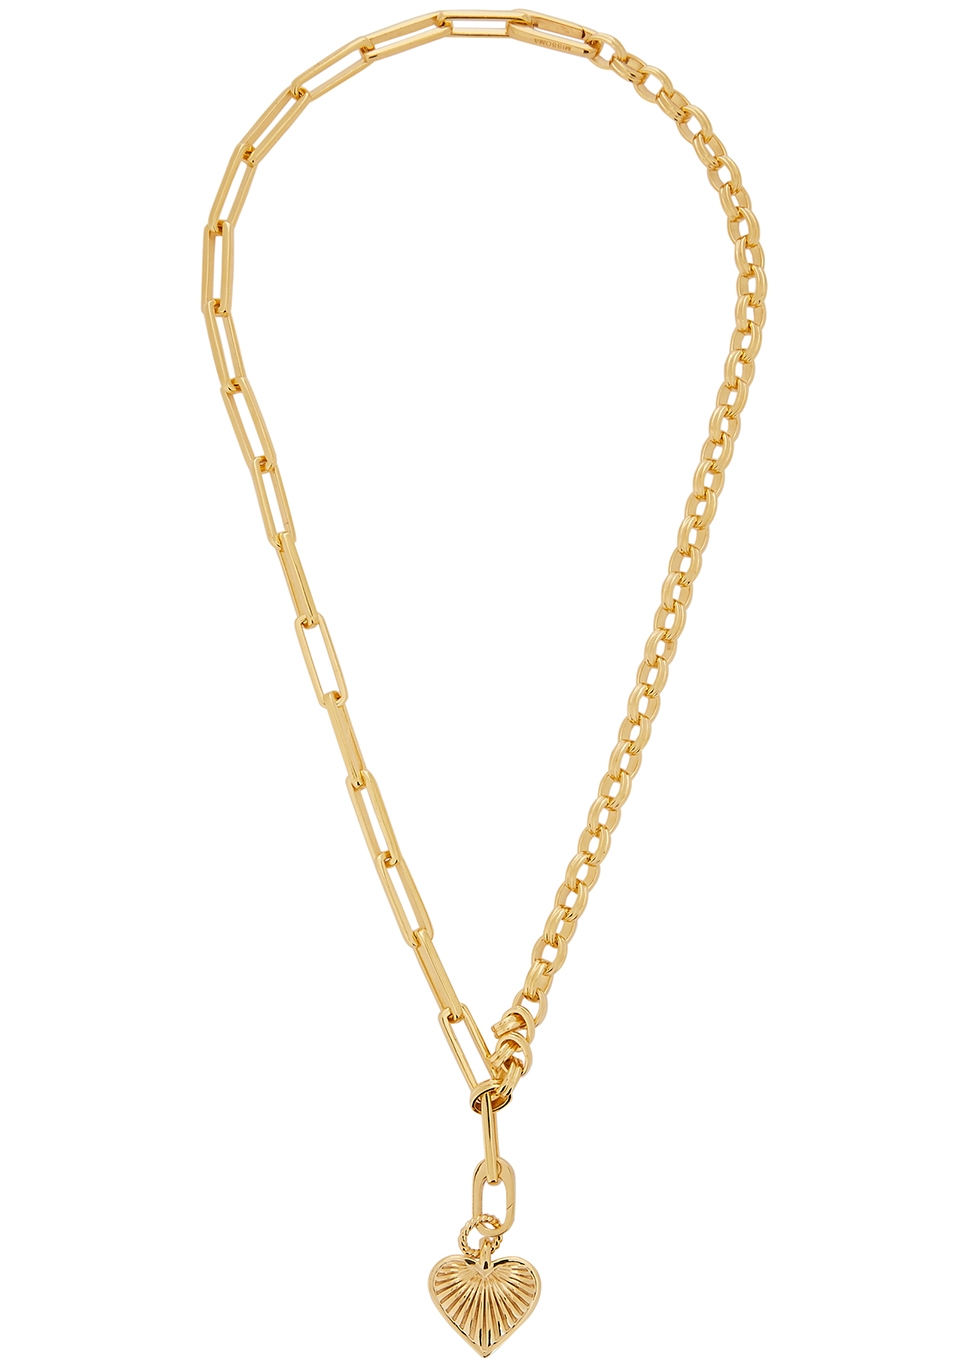 Deconstructed Axiom 18kt gold-plated necklace